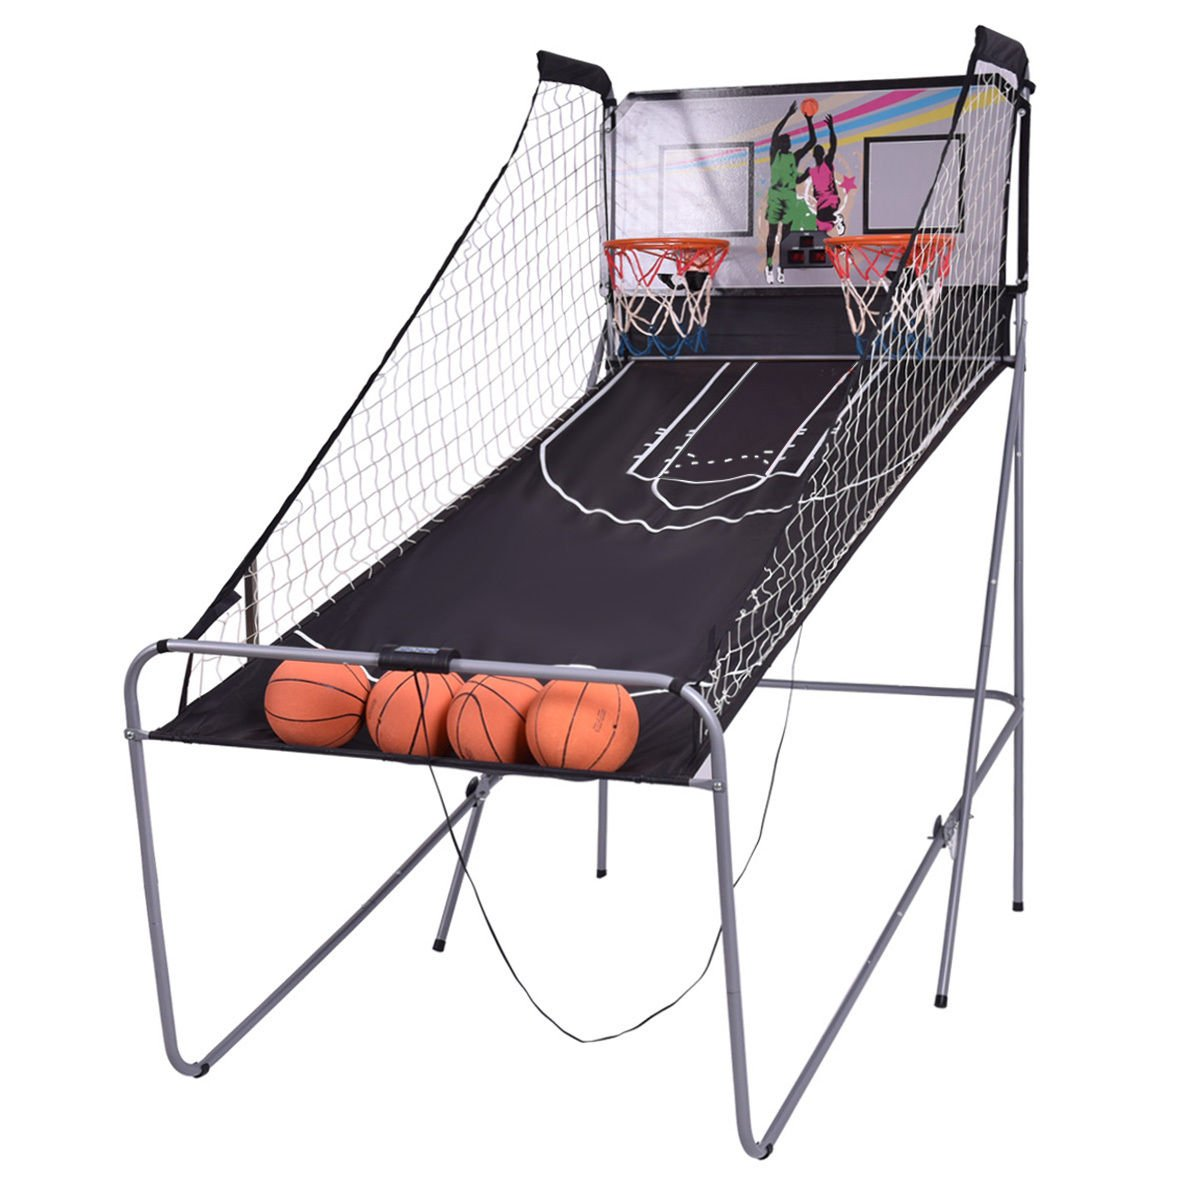 Giantex Indoor Basketball Arcade Game Double Electronic Hoops shot 2 Player W/ 4 Balls by Giantex